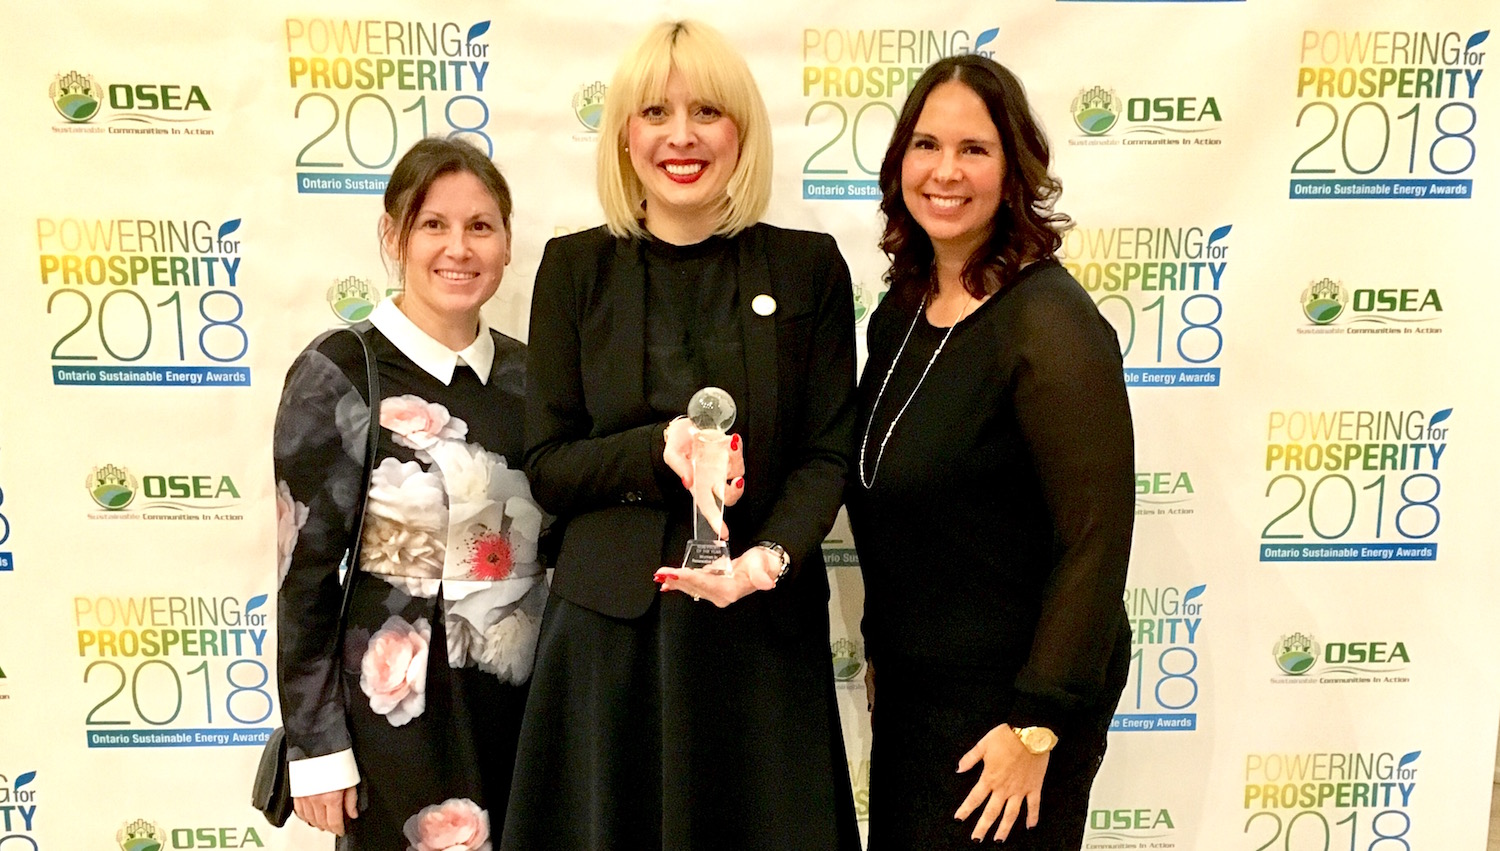 """Feb 8 2018: WiRE was recognized as NonProfit of the Year at Ontario Sustainable Energy Association's Powering Prosperity Awards. A delighted Joanna Oswae, WiRE Co-Founder and Chair, accepted the award saying """"WiRE is very passionate about working in and supporting the energy sector, and I am honoured to accept this award on behalf of the entire WiRE community"""". From l-r Jen Aitchison (Hugh Woods, WiRE Advisory Committee), Joanna Osawe (DMC Power, WiRE Co-Founder & Chair), Sarah Monture (AABO, WiRE Advisory Committee)."""